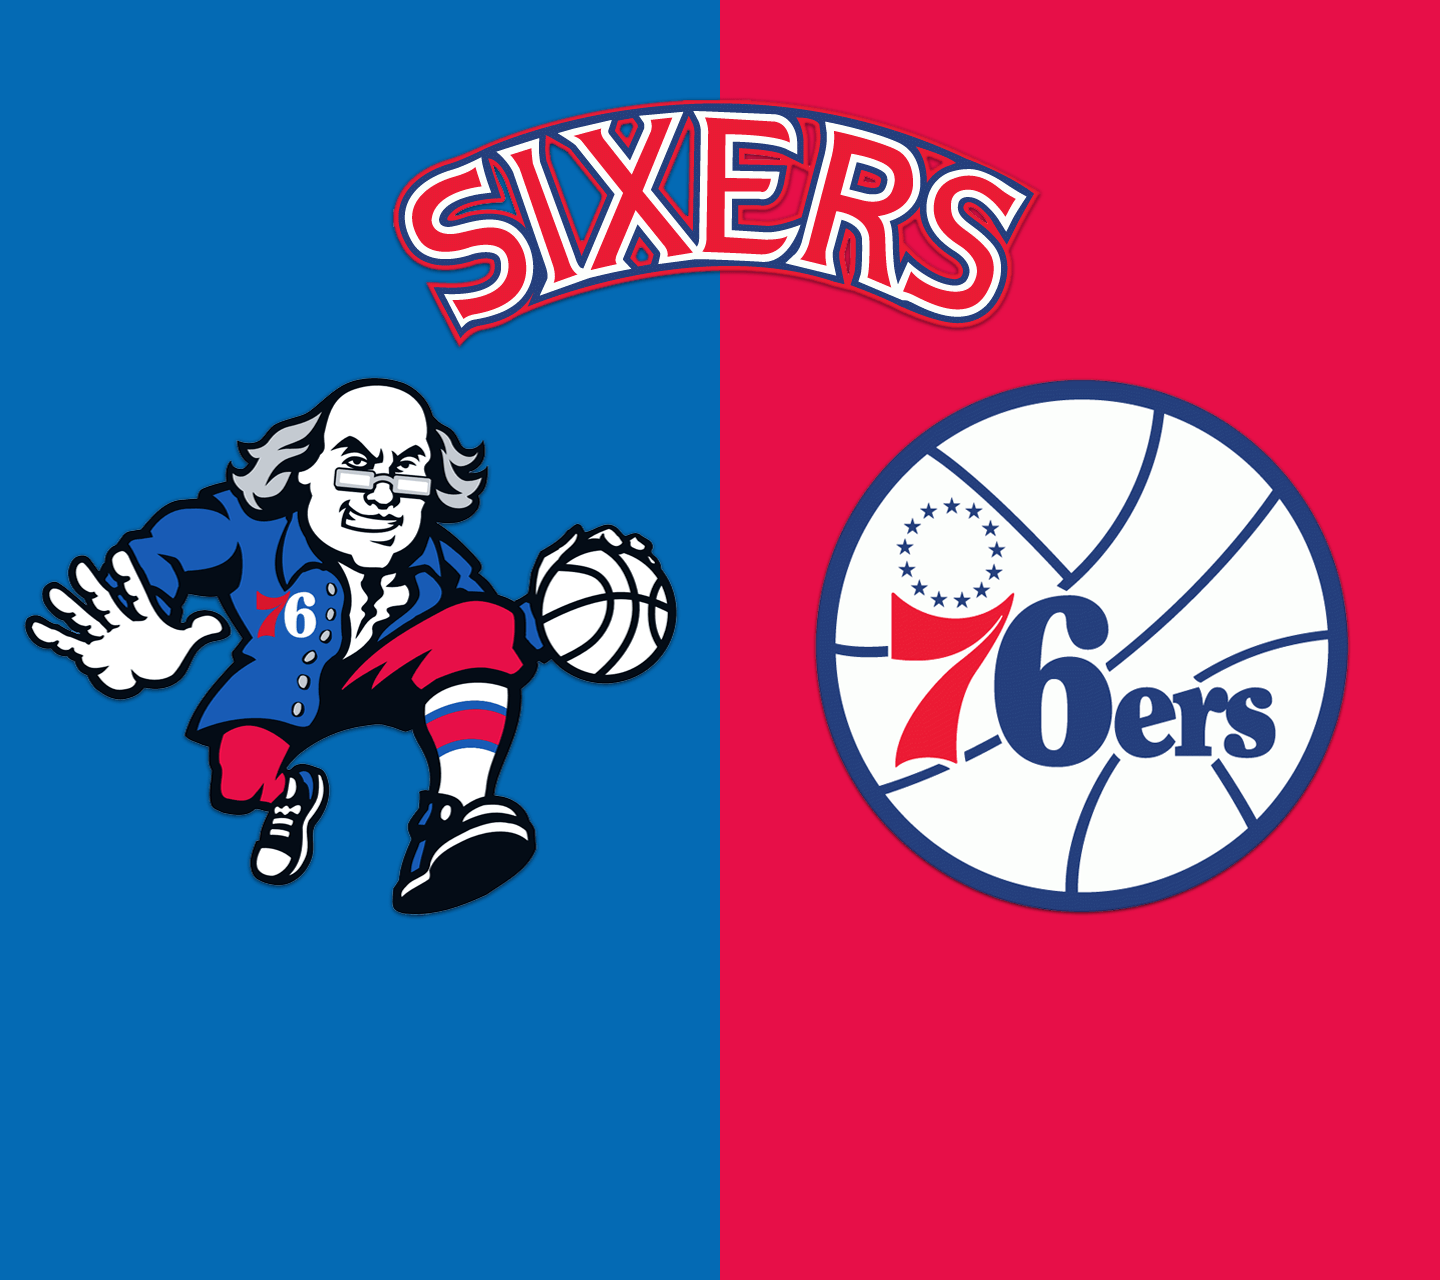 Sixers wallpapers for Android